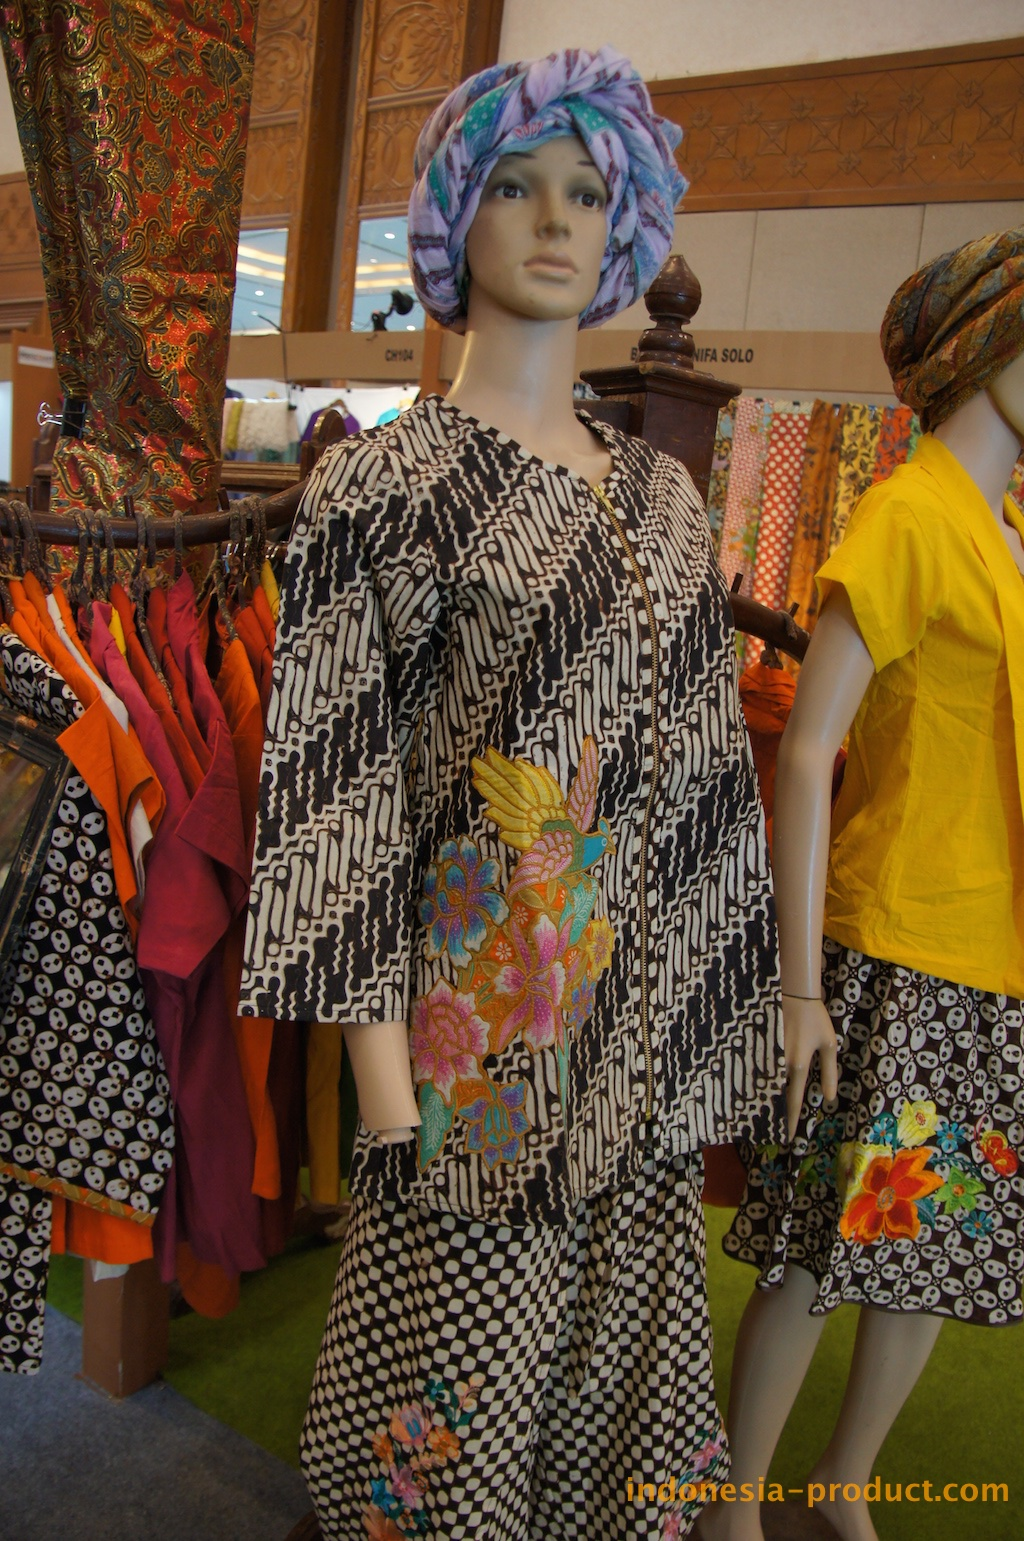 pekalongan batik  Directory of wholesale manufacturers